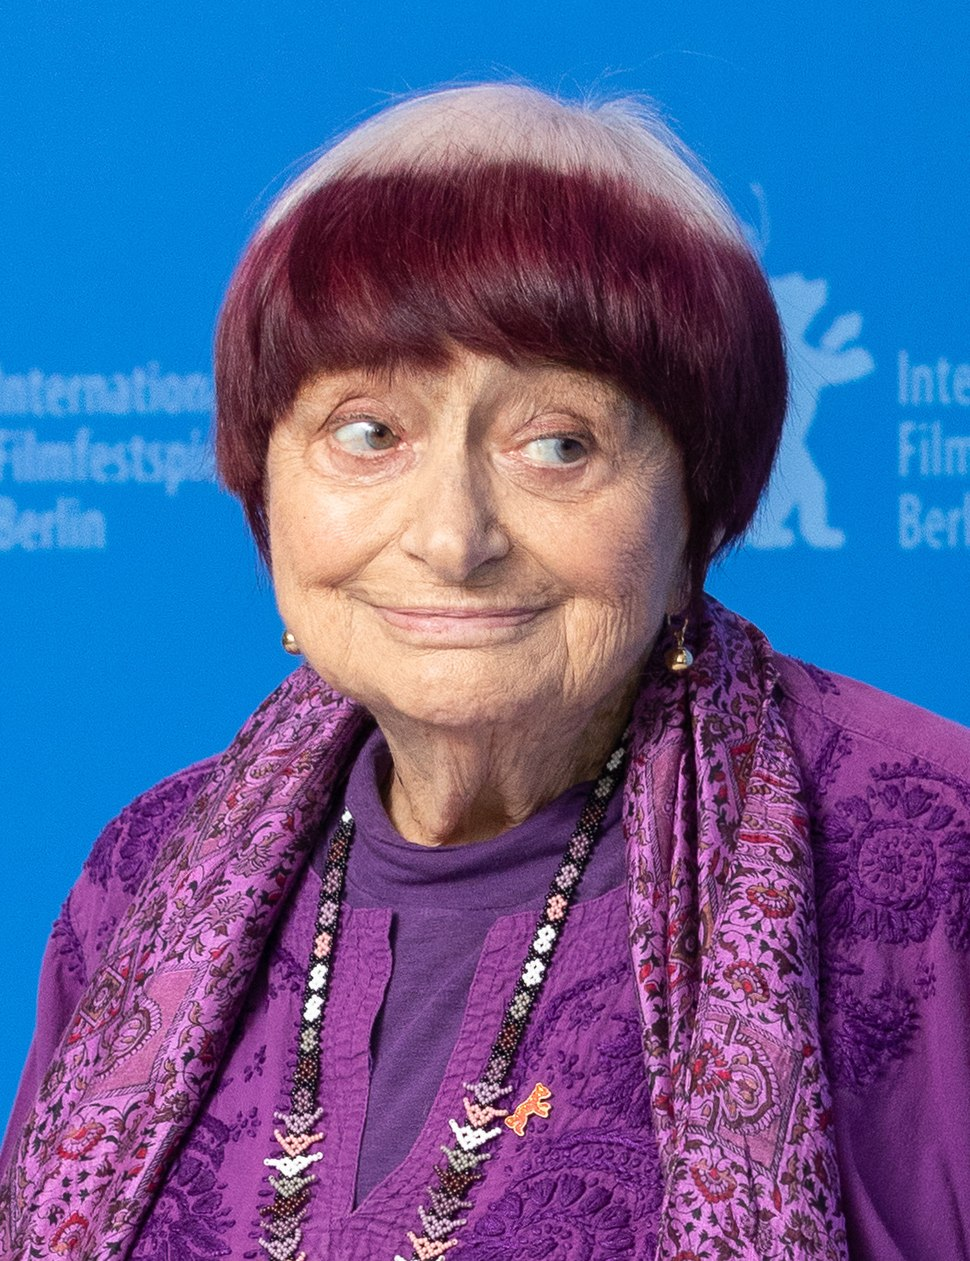 Agnès Varda (Berlinale 2019) (cropped)